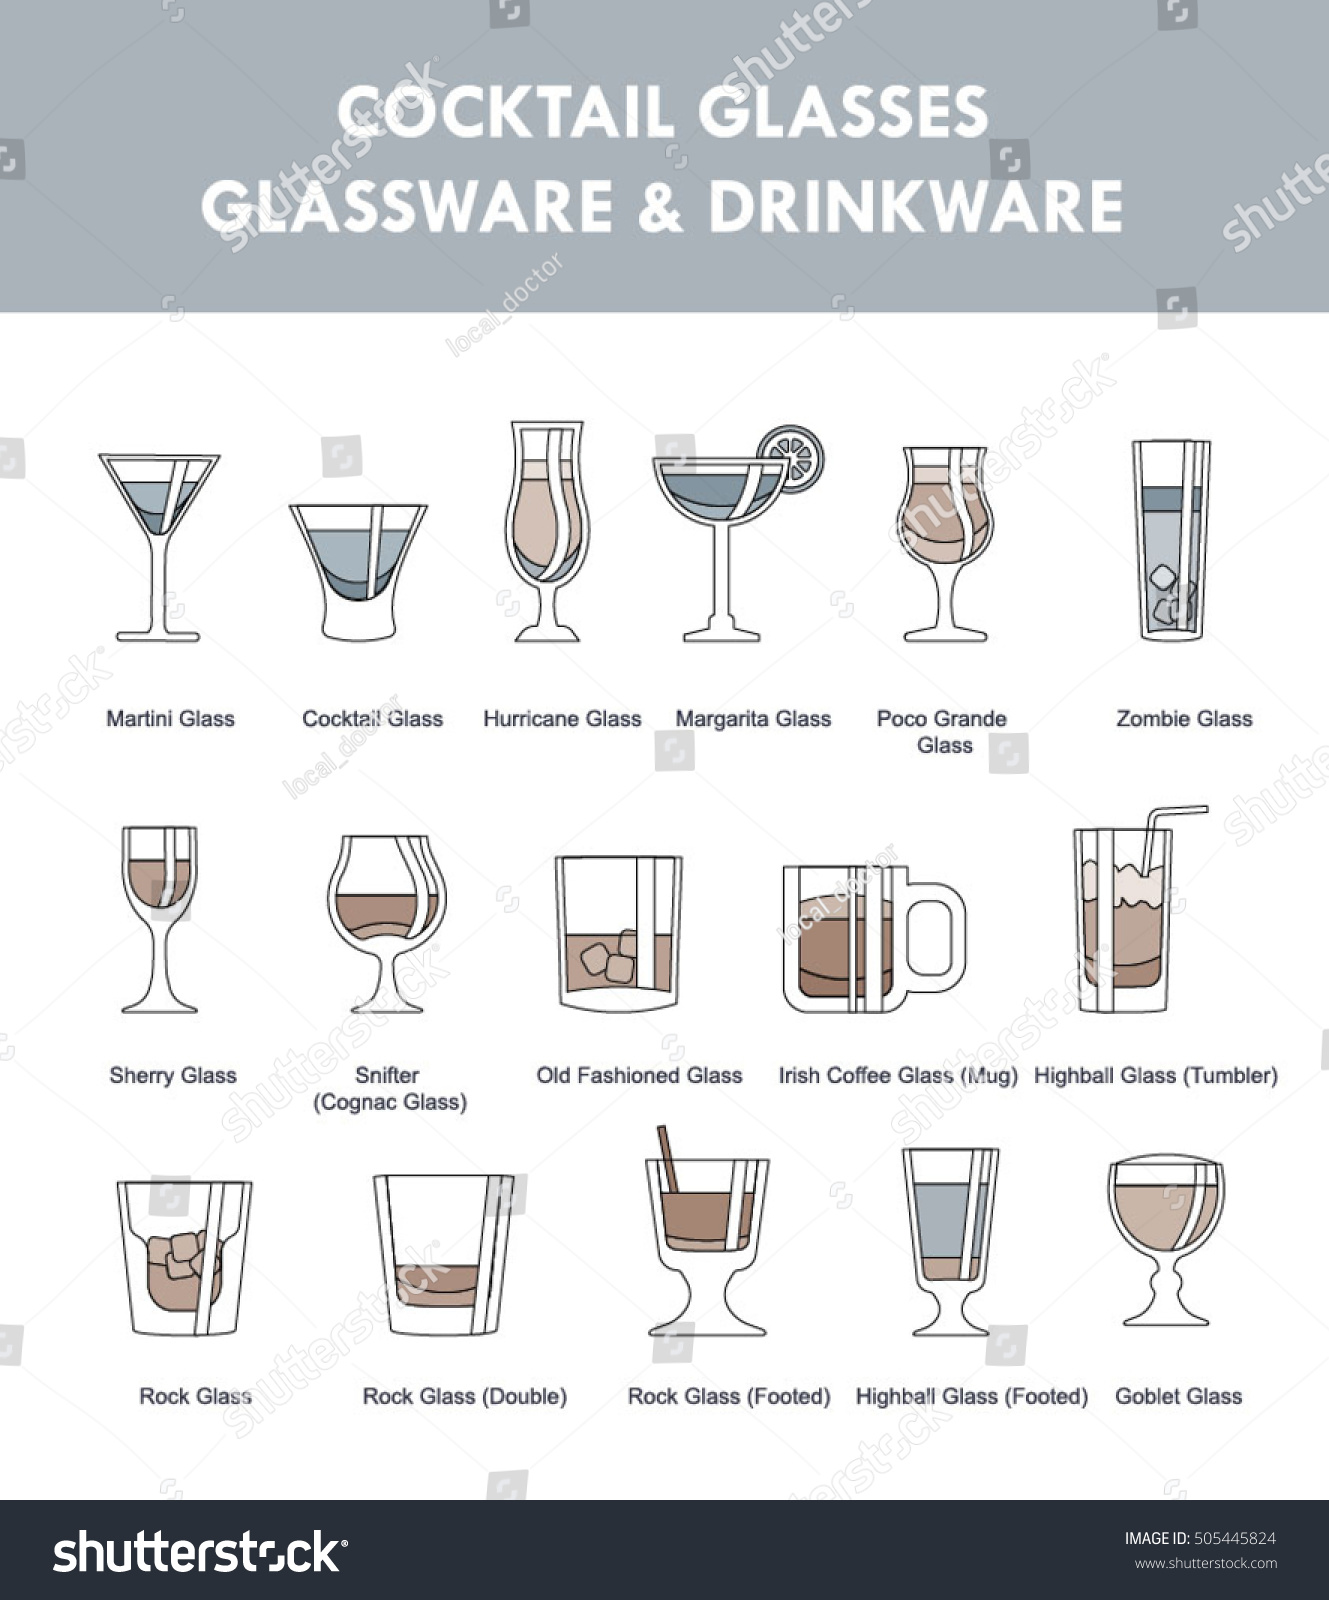 Amazing Set Of Icons Of Alcohol Drinks With Glasses Titles. Ultimate Bartender Guide,  Helper.